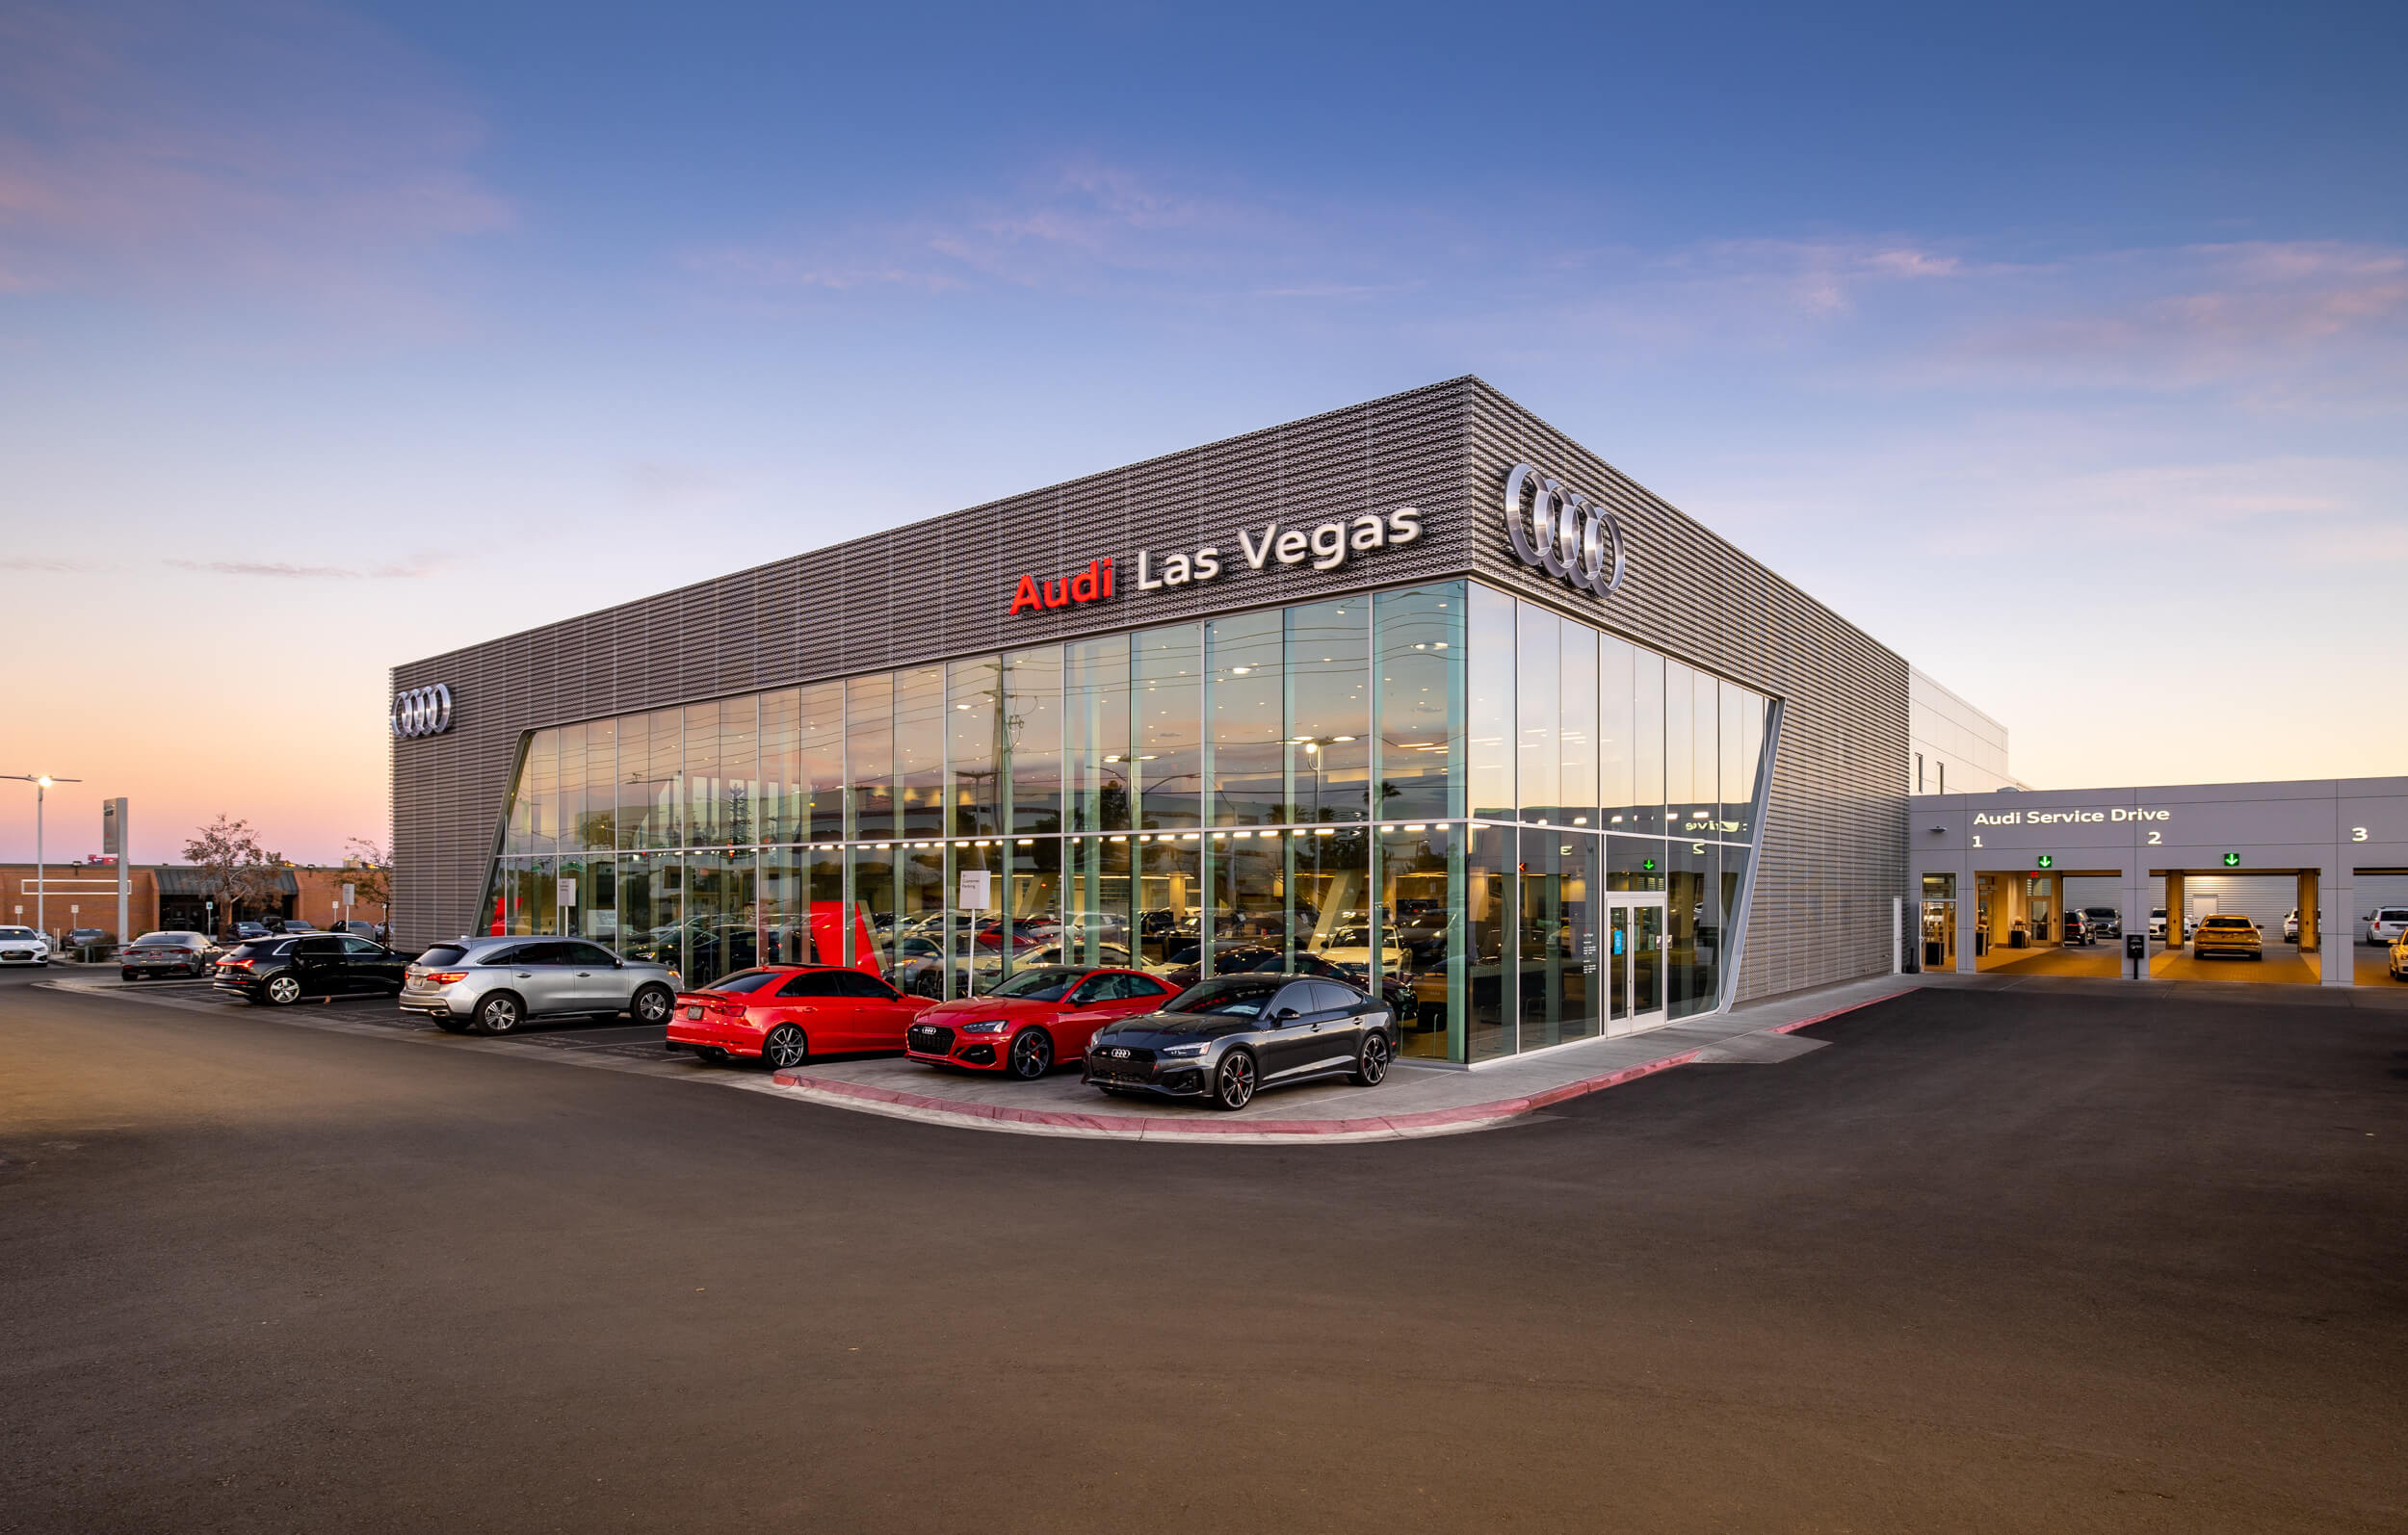 With the right licenses and a little luck, you can find a car dealership for sale that you can turn into a highly successful business. Audi Las Vegas Your Premier Las Vegas Audi Dealership